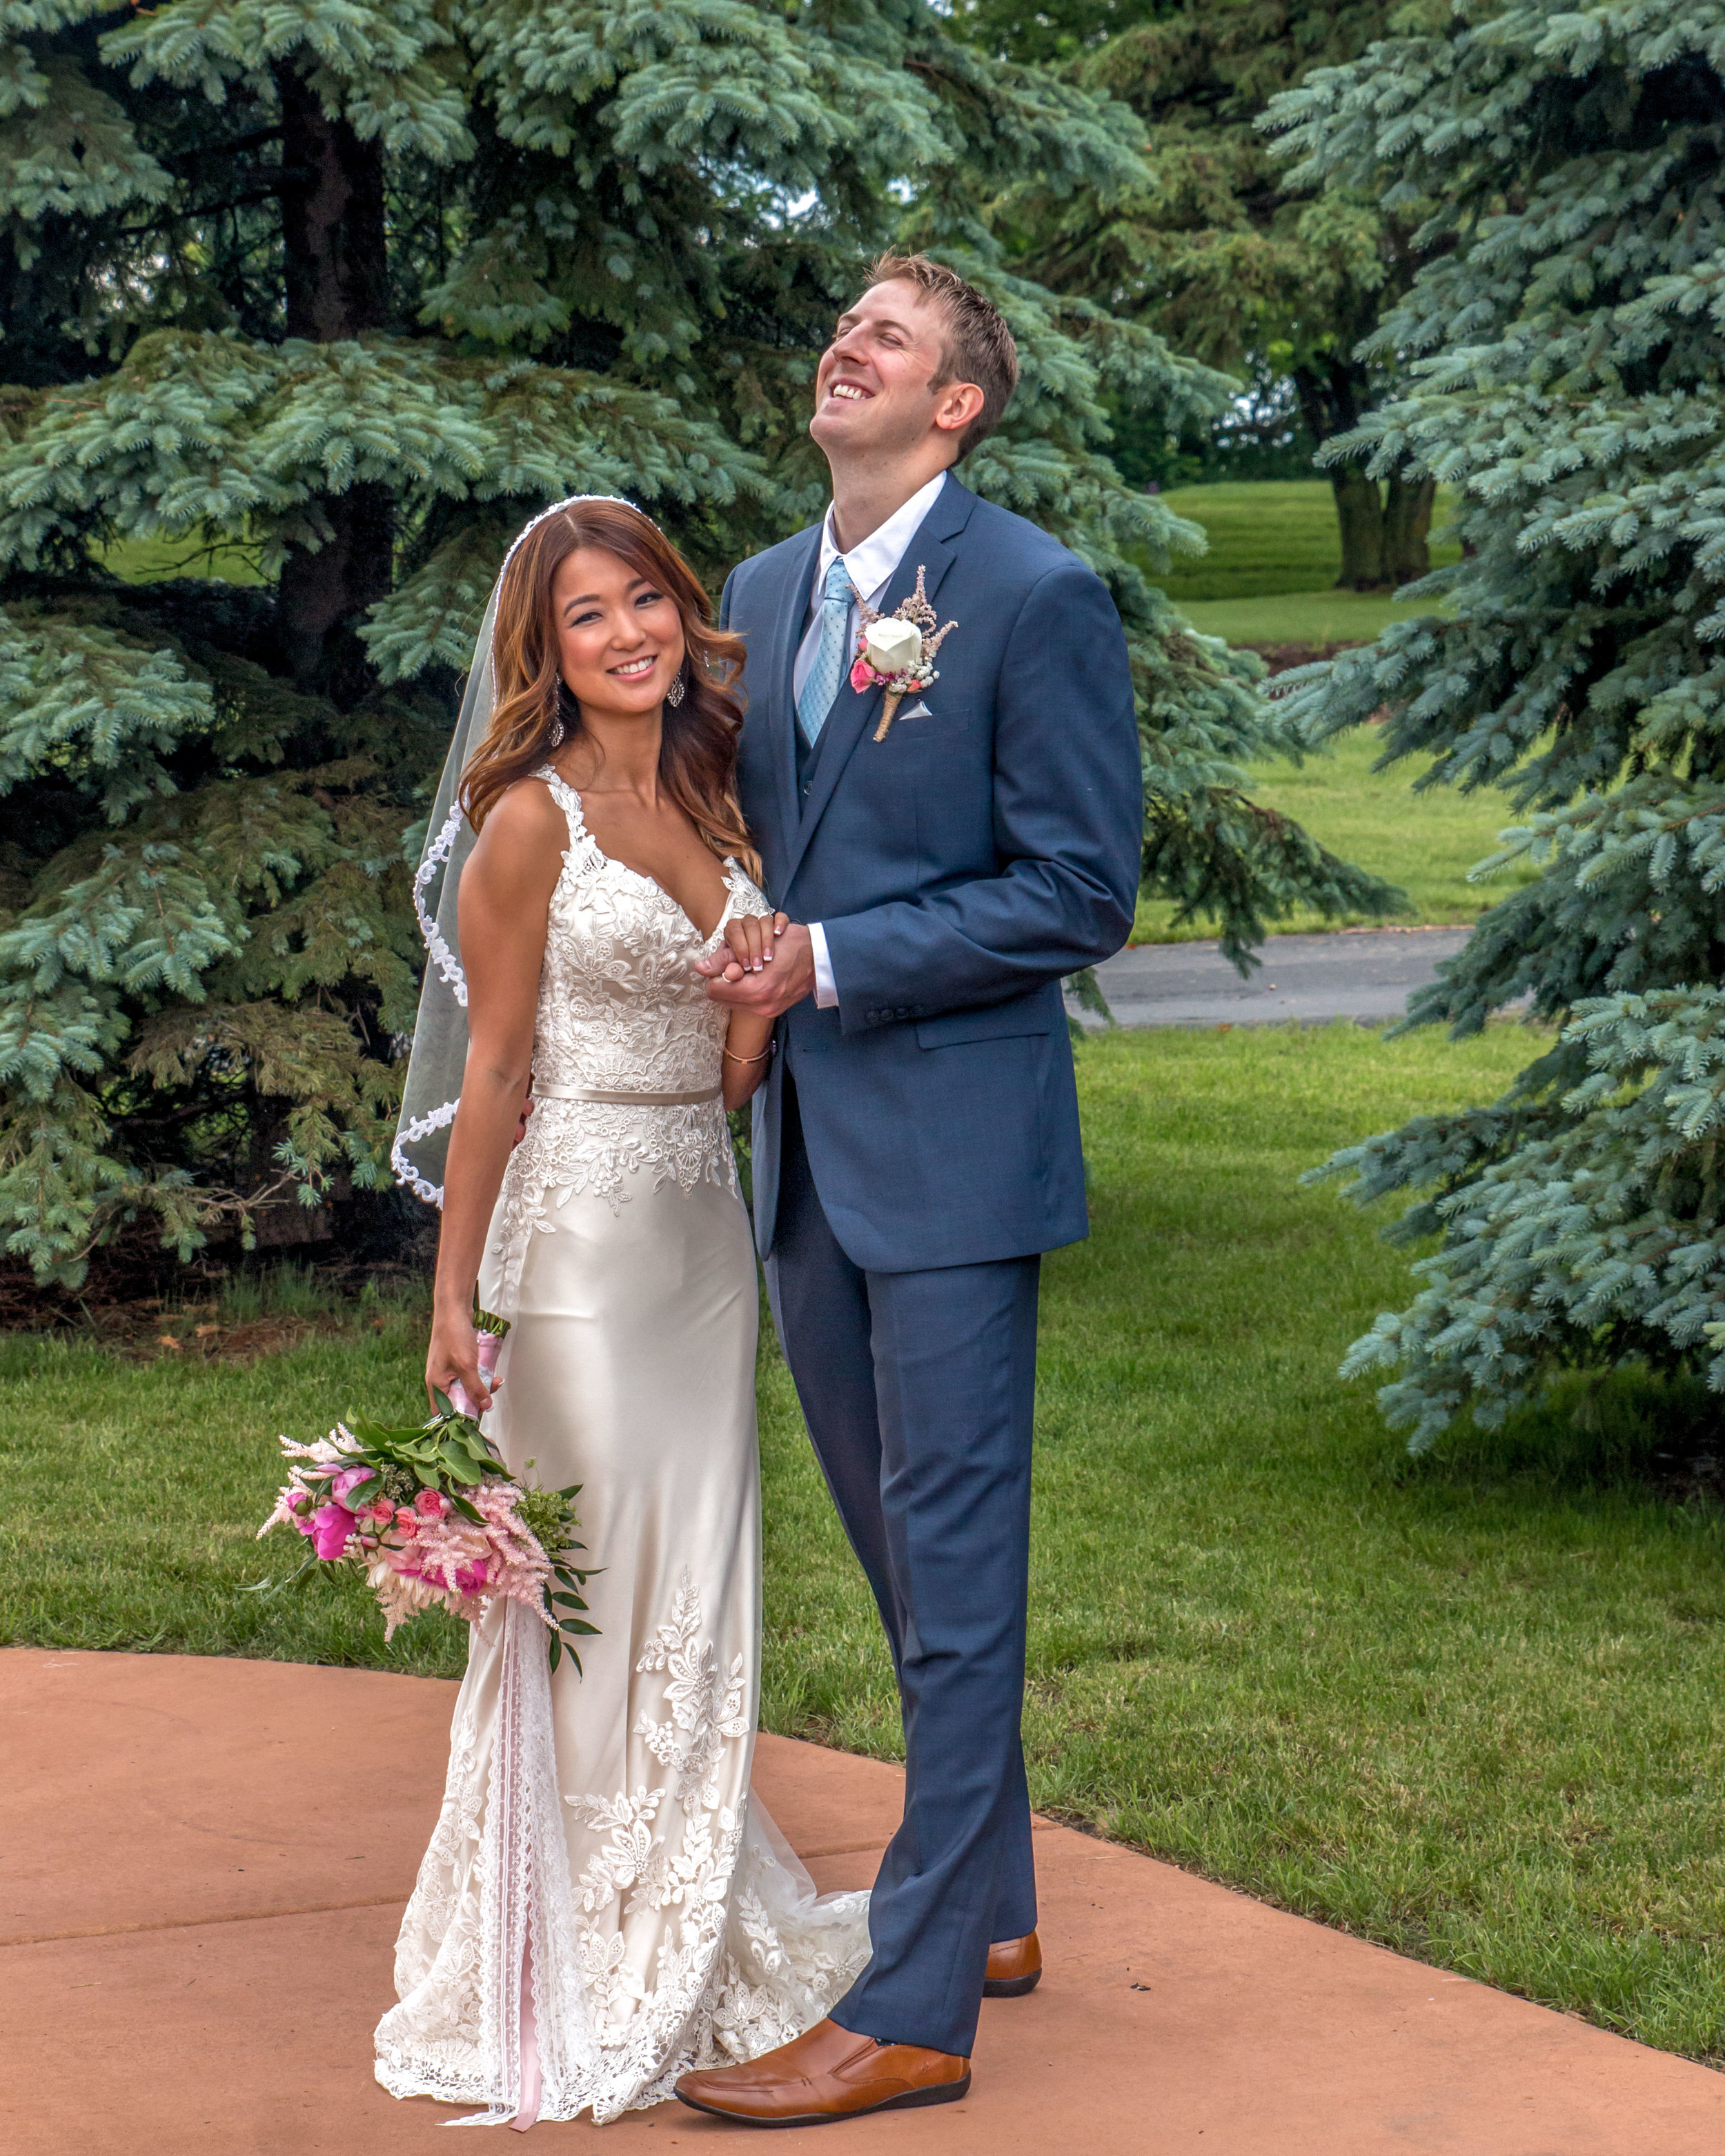 Minnesota Wedding at Glenhaven, outdoor ceremony, Fab Weddings, groom laughing